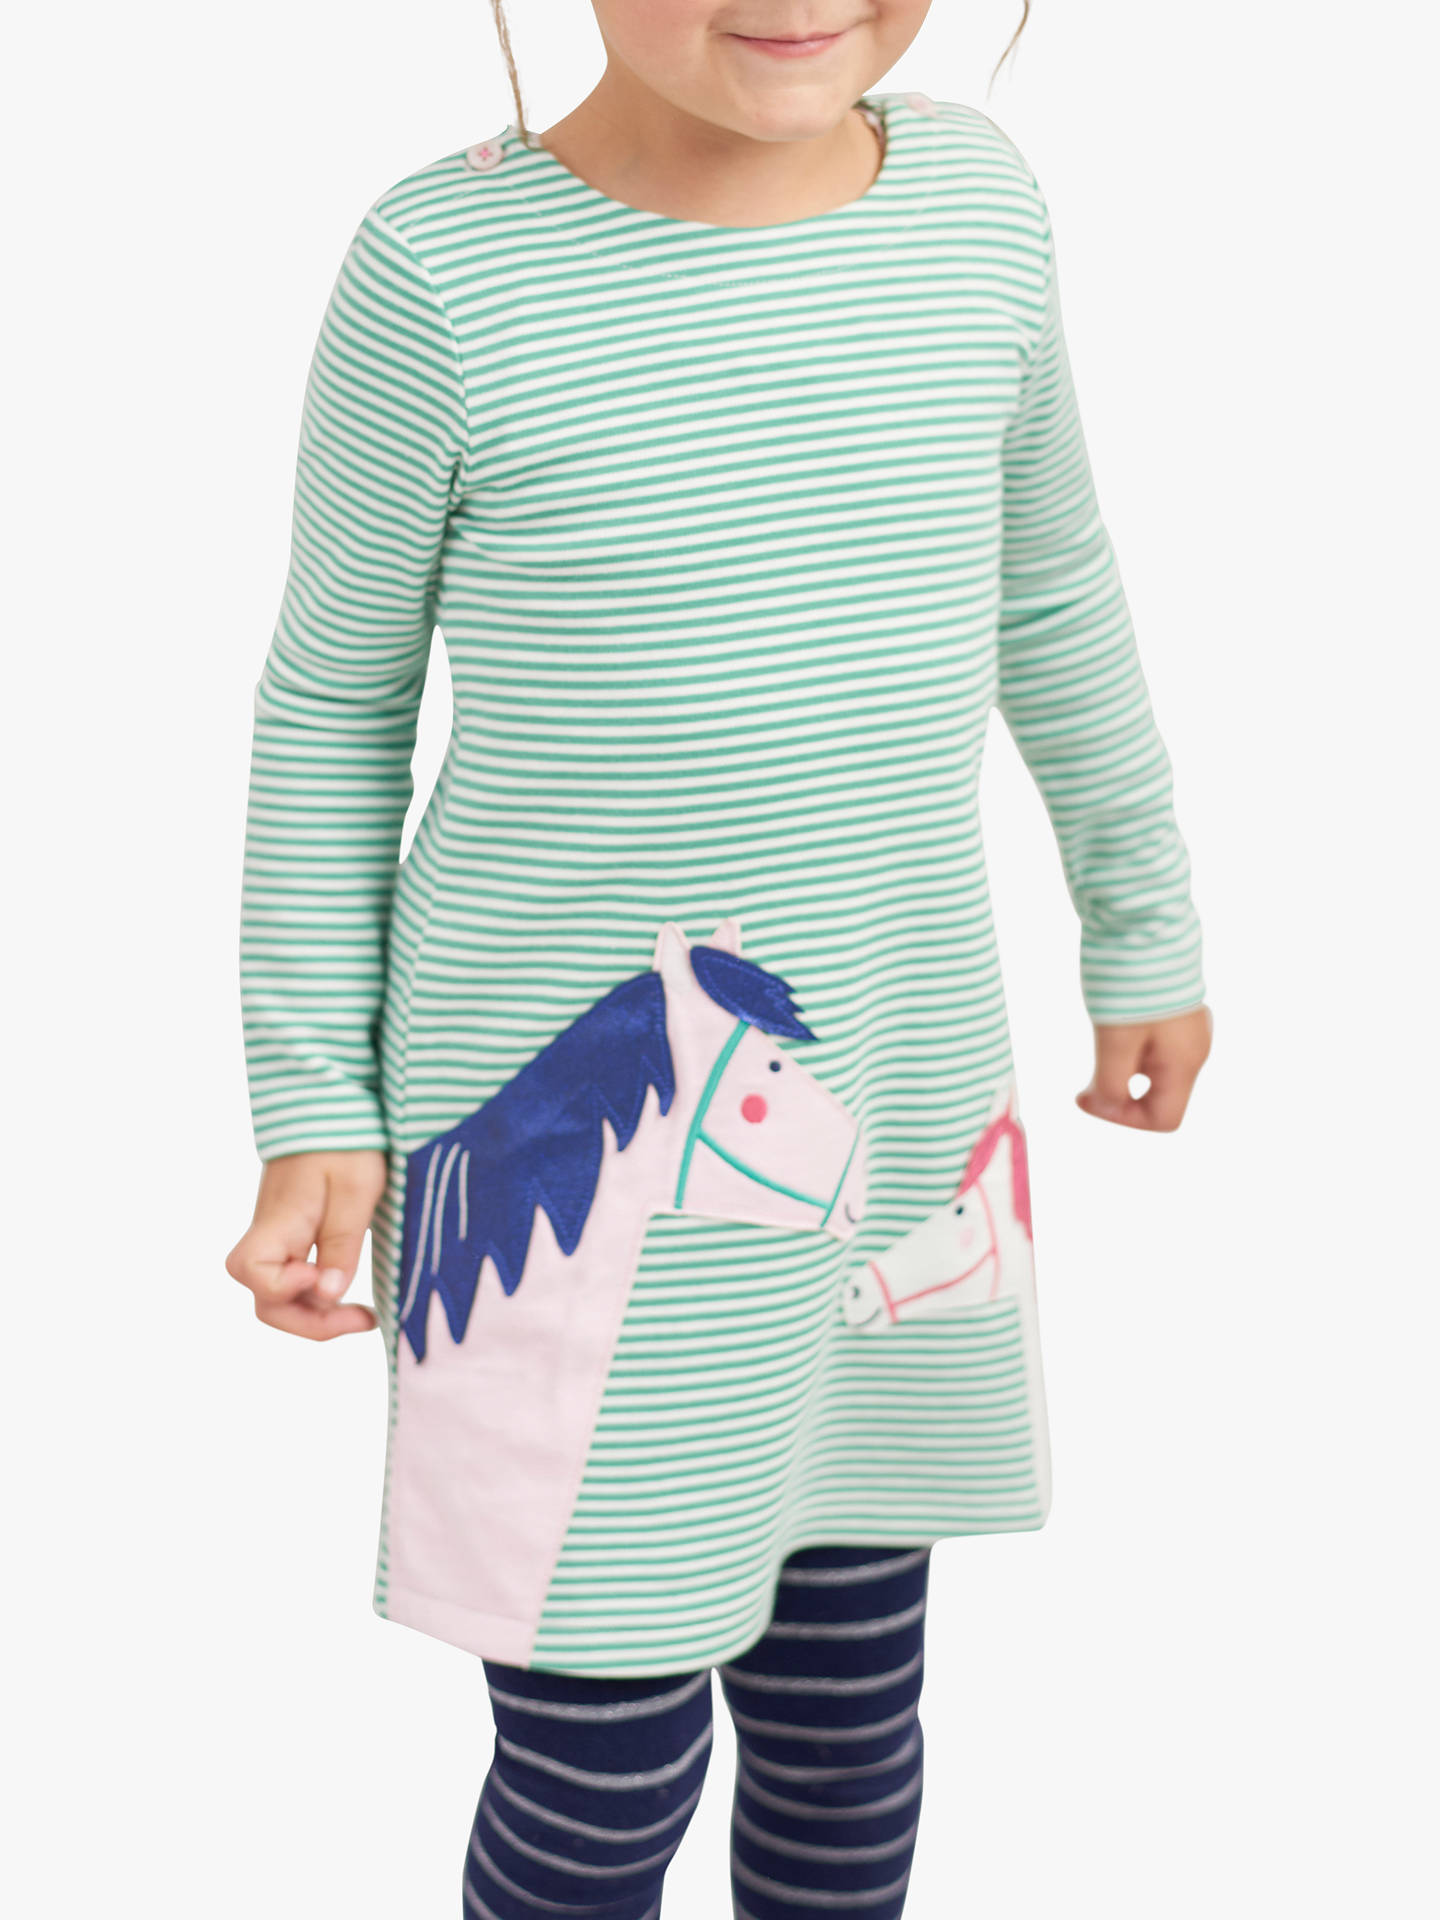 Brand new Joules Girls Kaye Applique Dress Navy Stripe Horse Size 1yr RRP £29.99